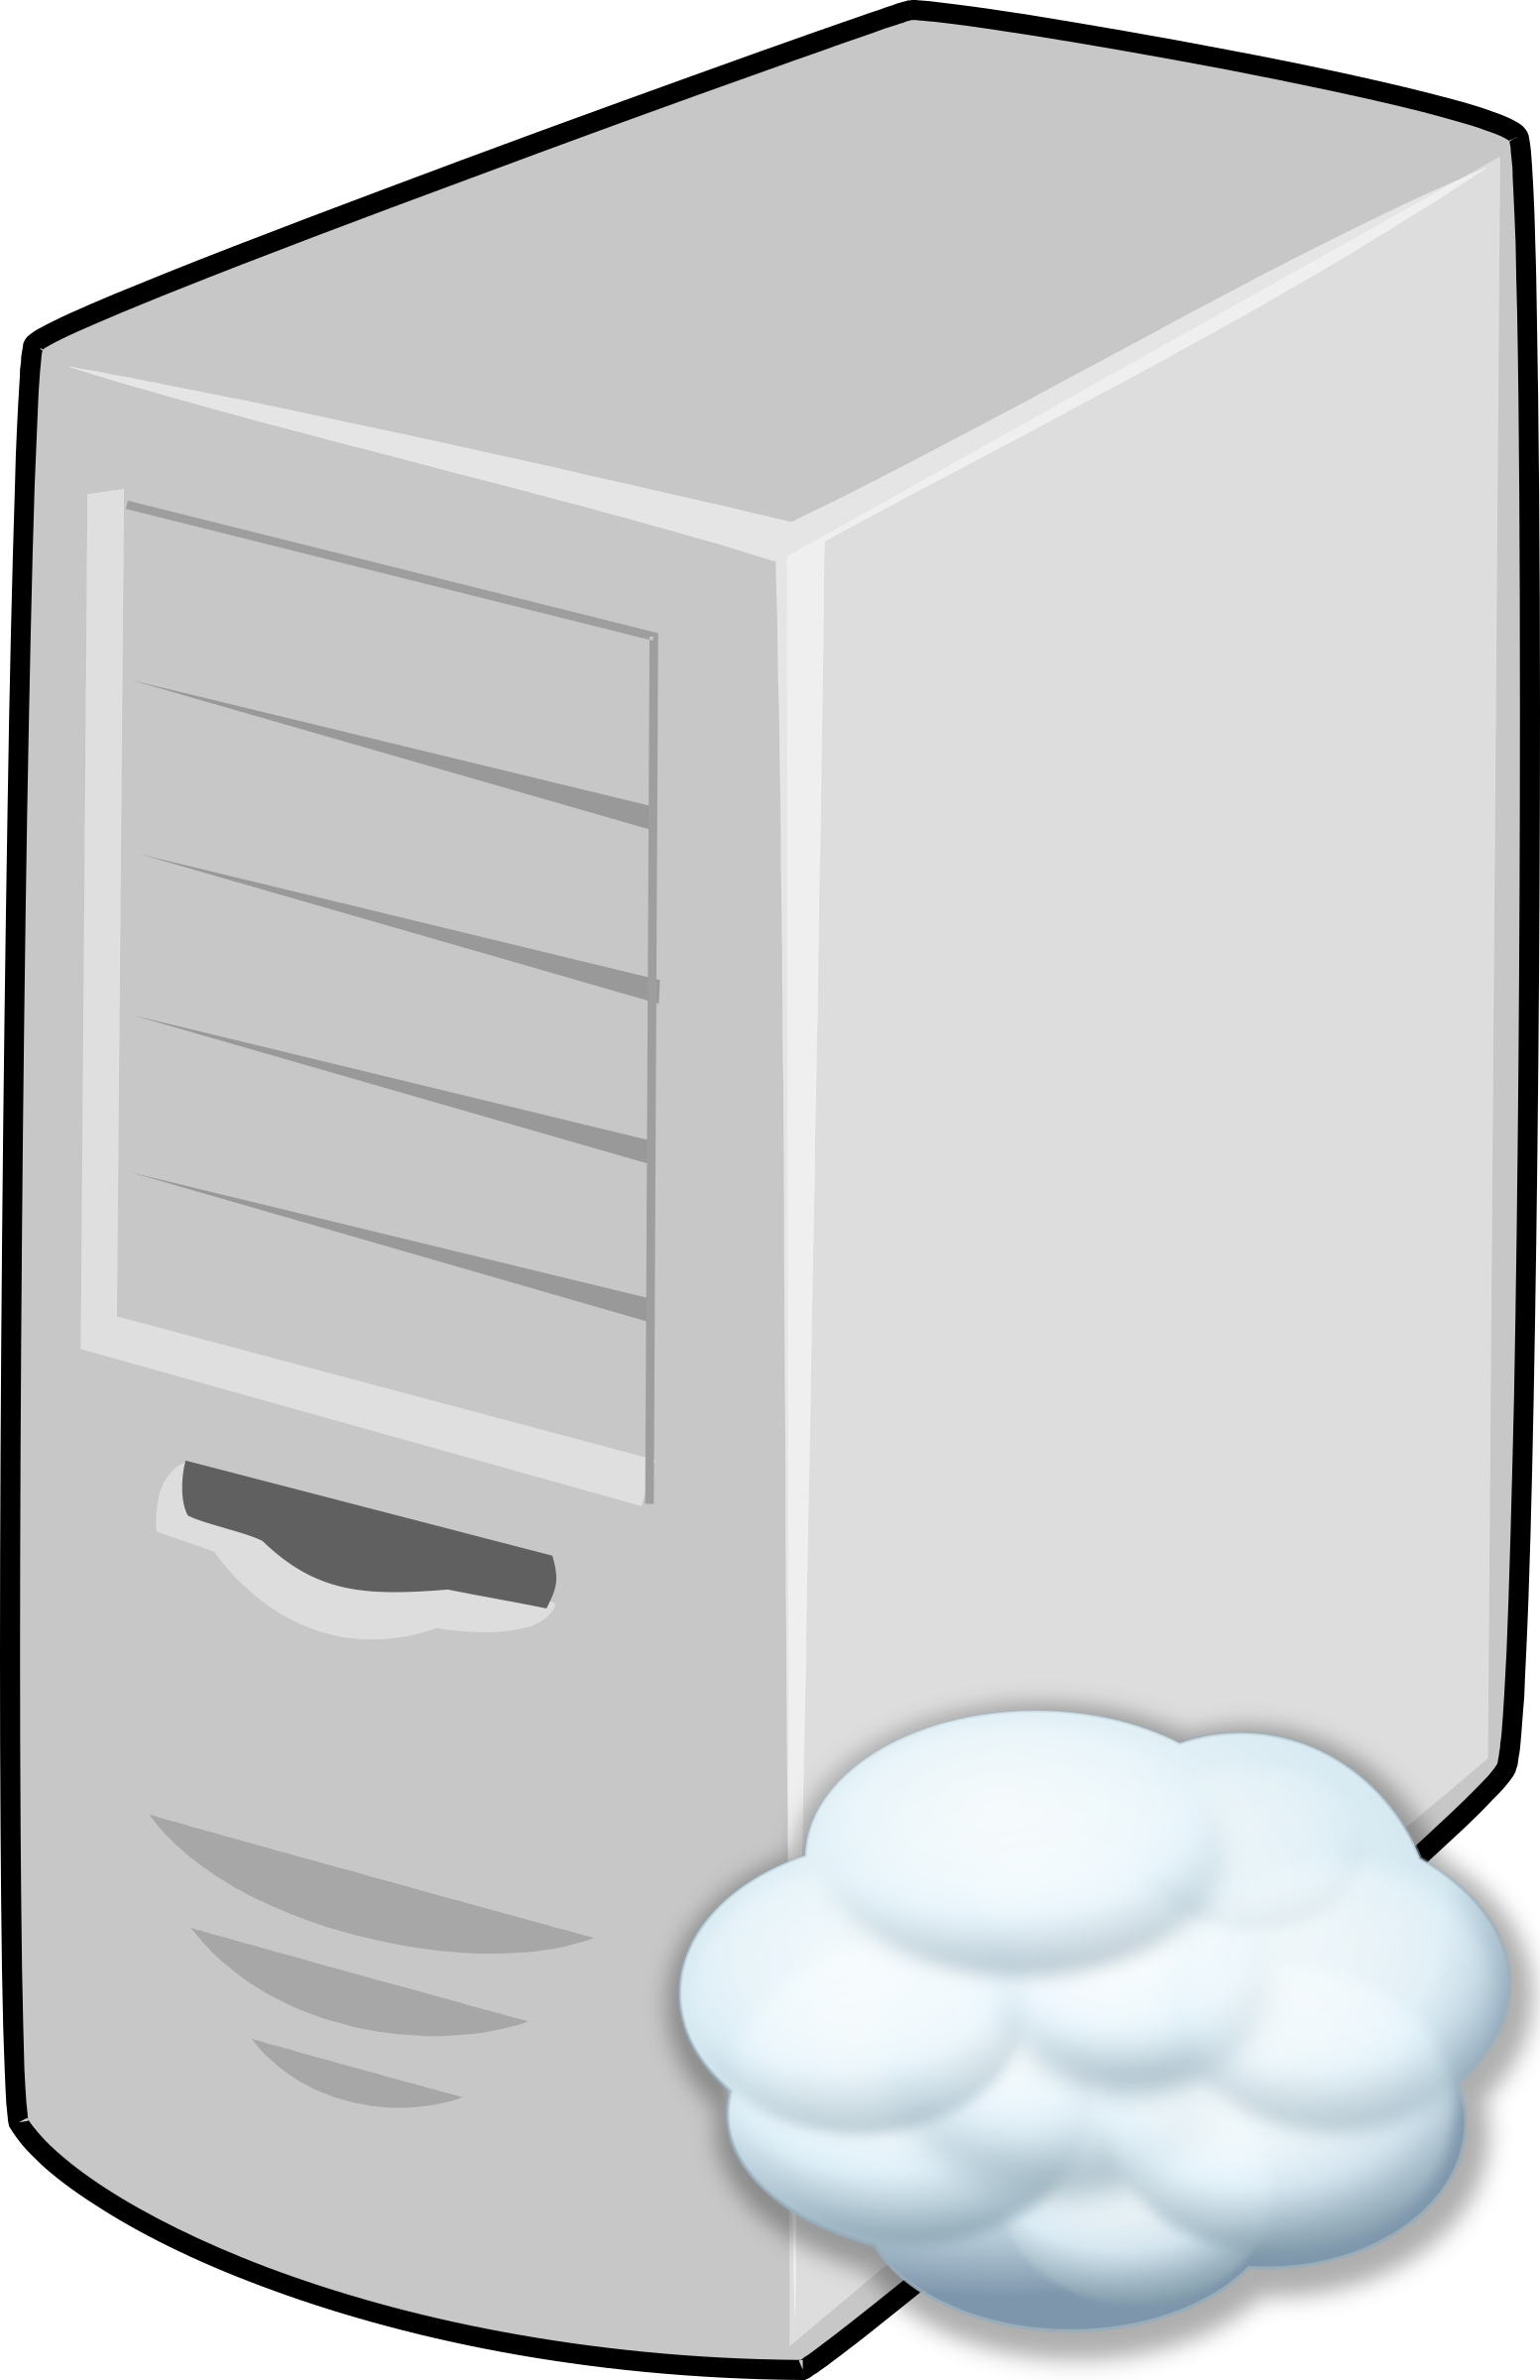 Server clipart for powerpoint 3 » Clipart Station.